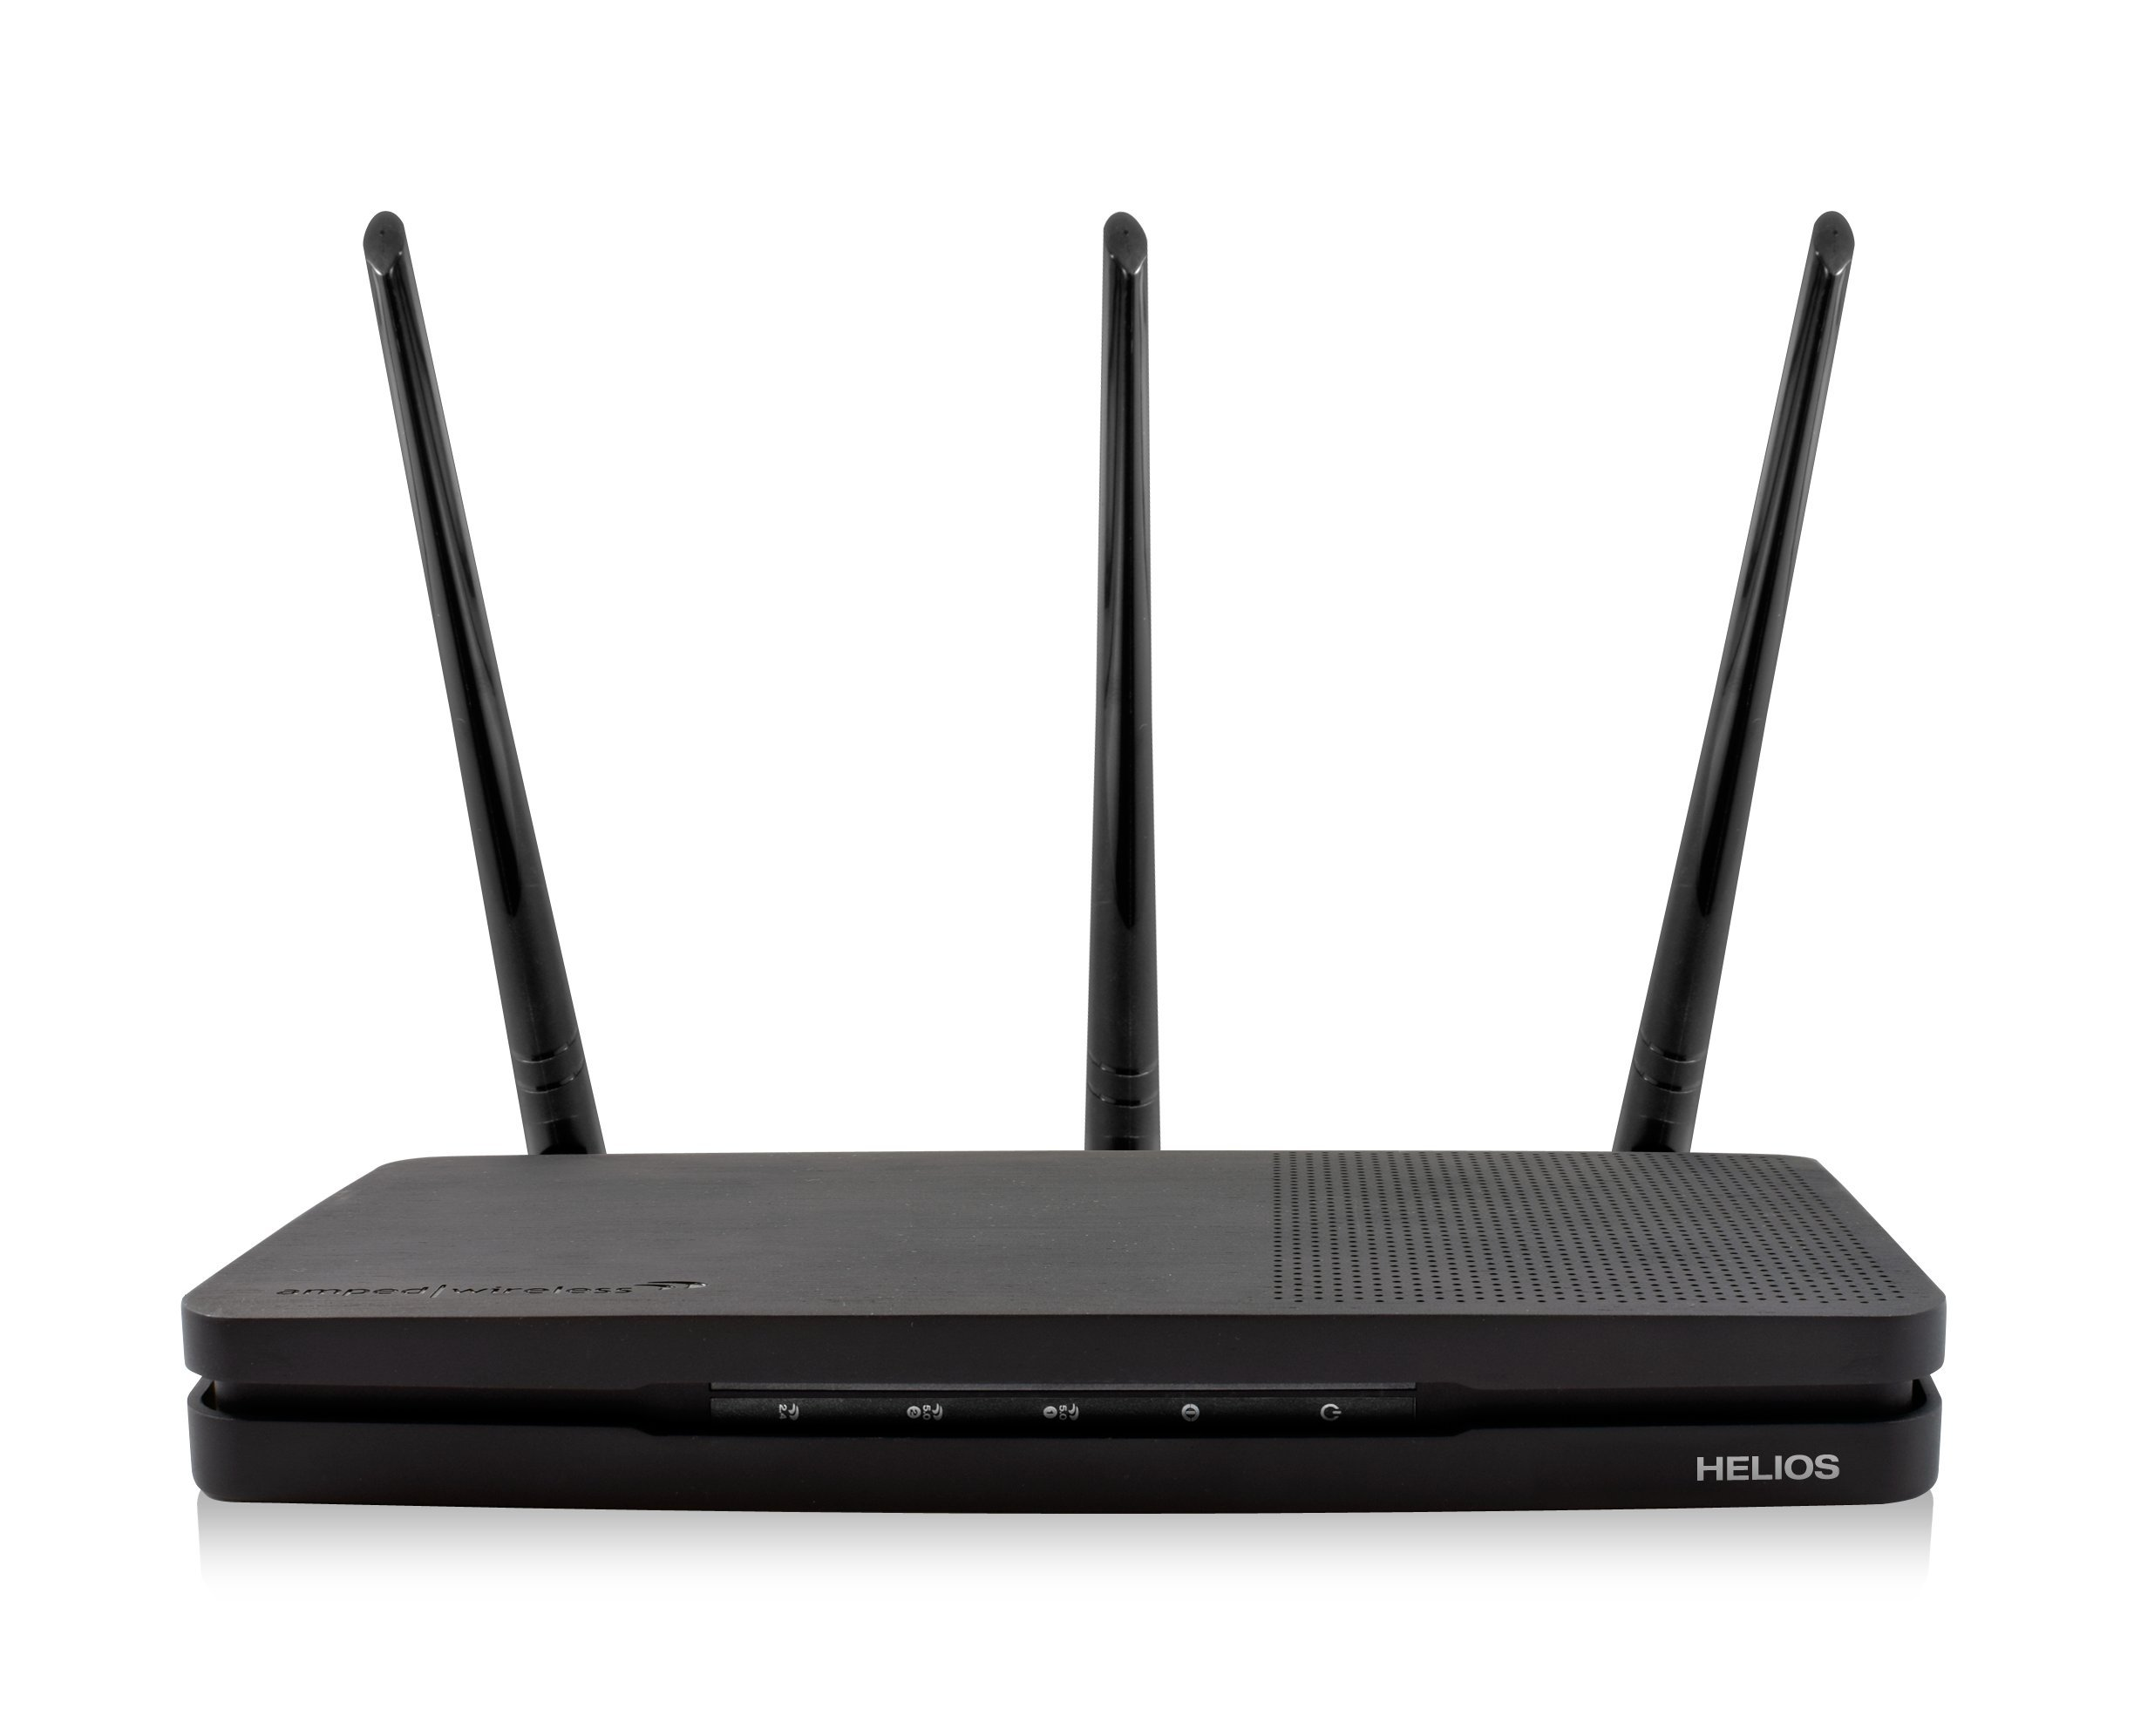 Amped Wireless HELIOS, a High Power AC2200 Tri-Band Wi-Fi Router (RTA2200T)